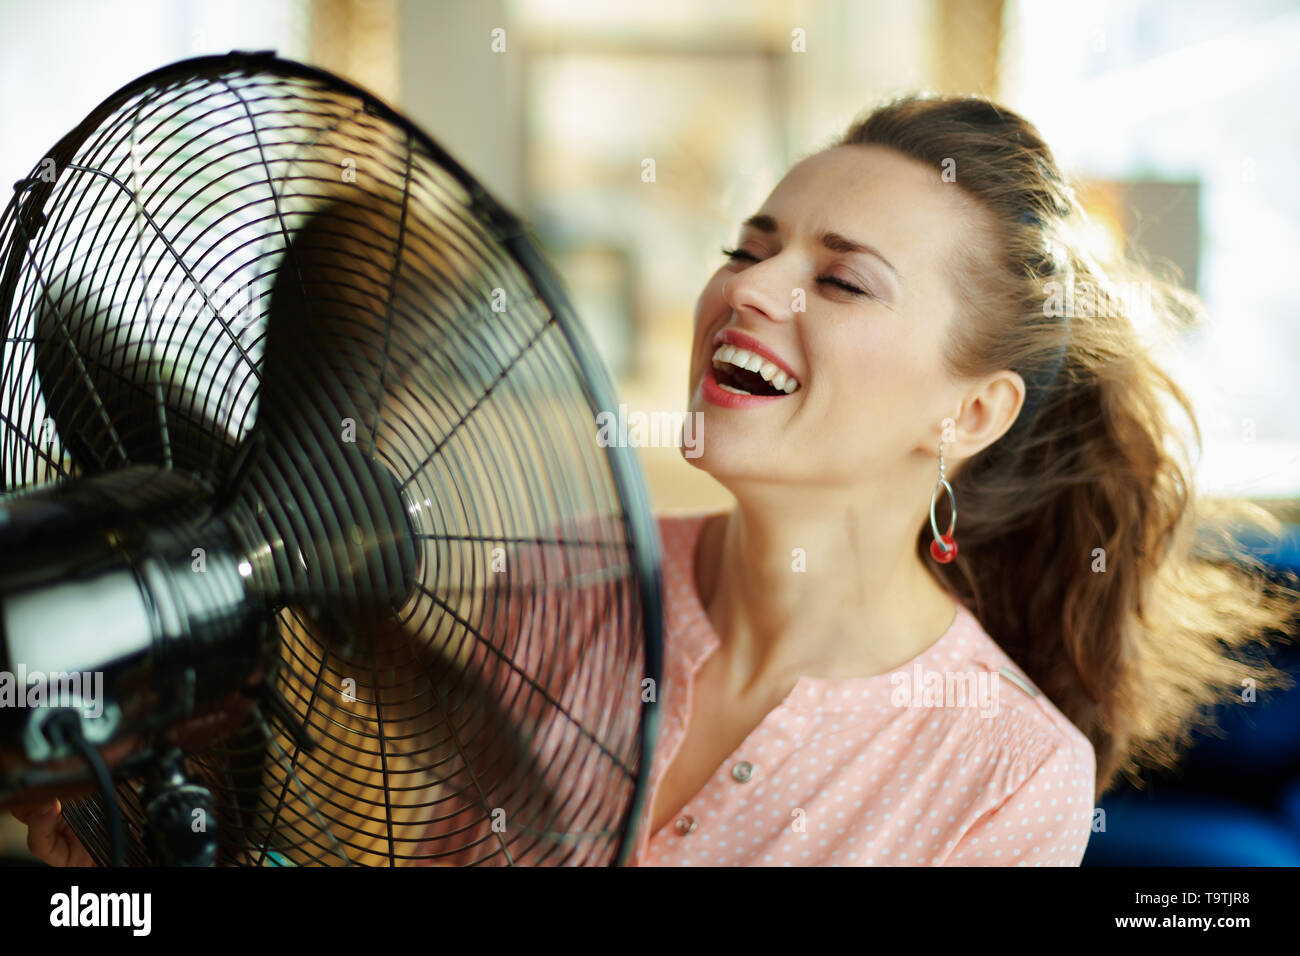 smiling stylish housewife in the modern house in sunny hot summer day using electric floor standing fan. - Stock Image